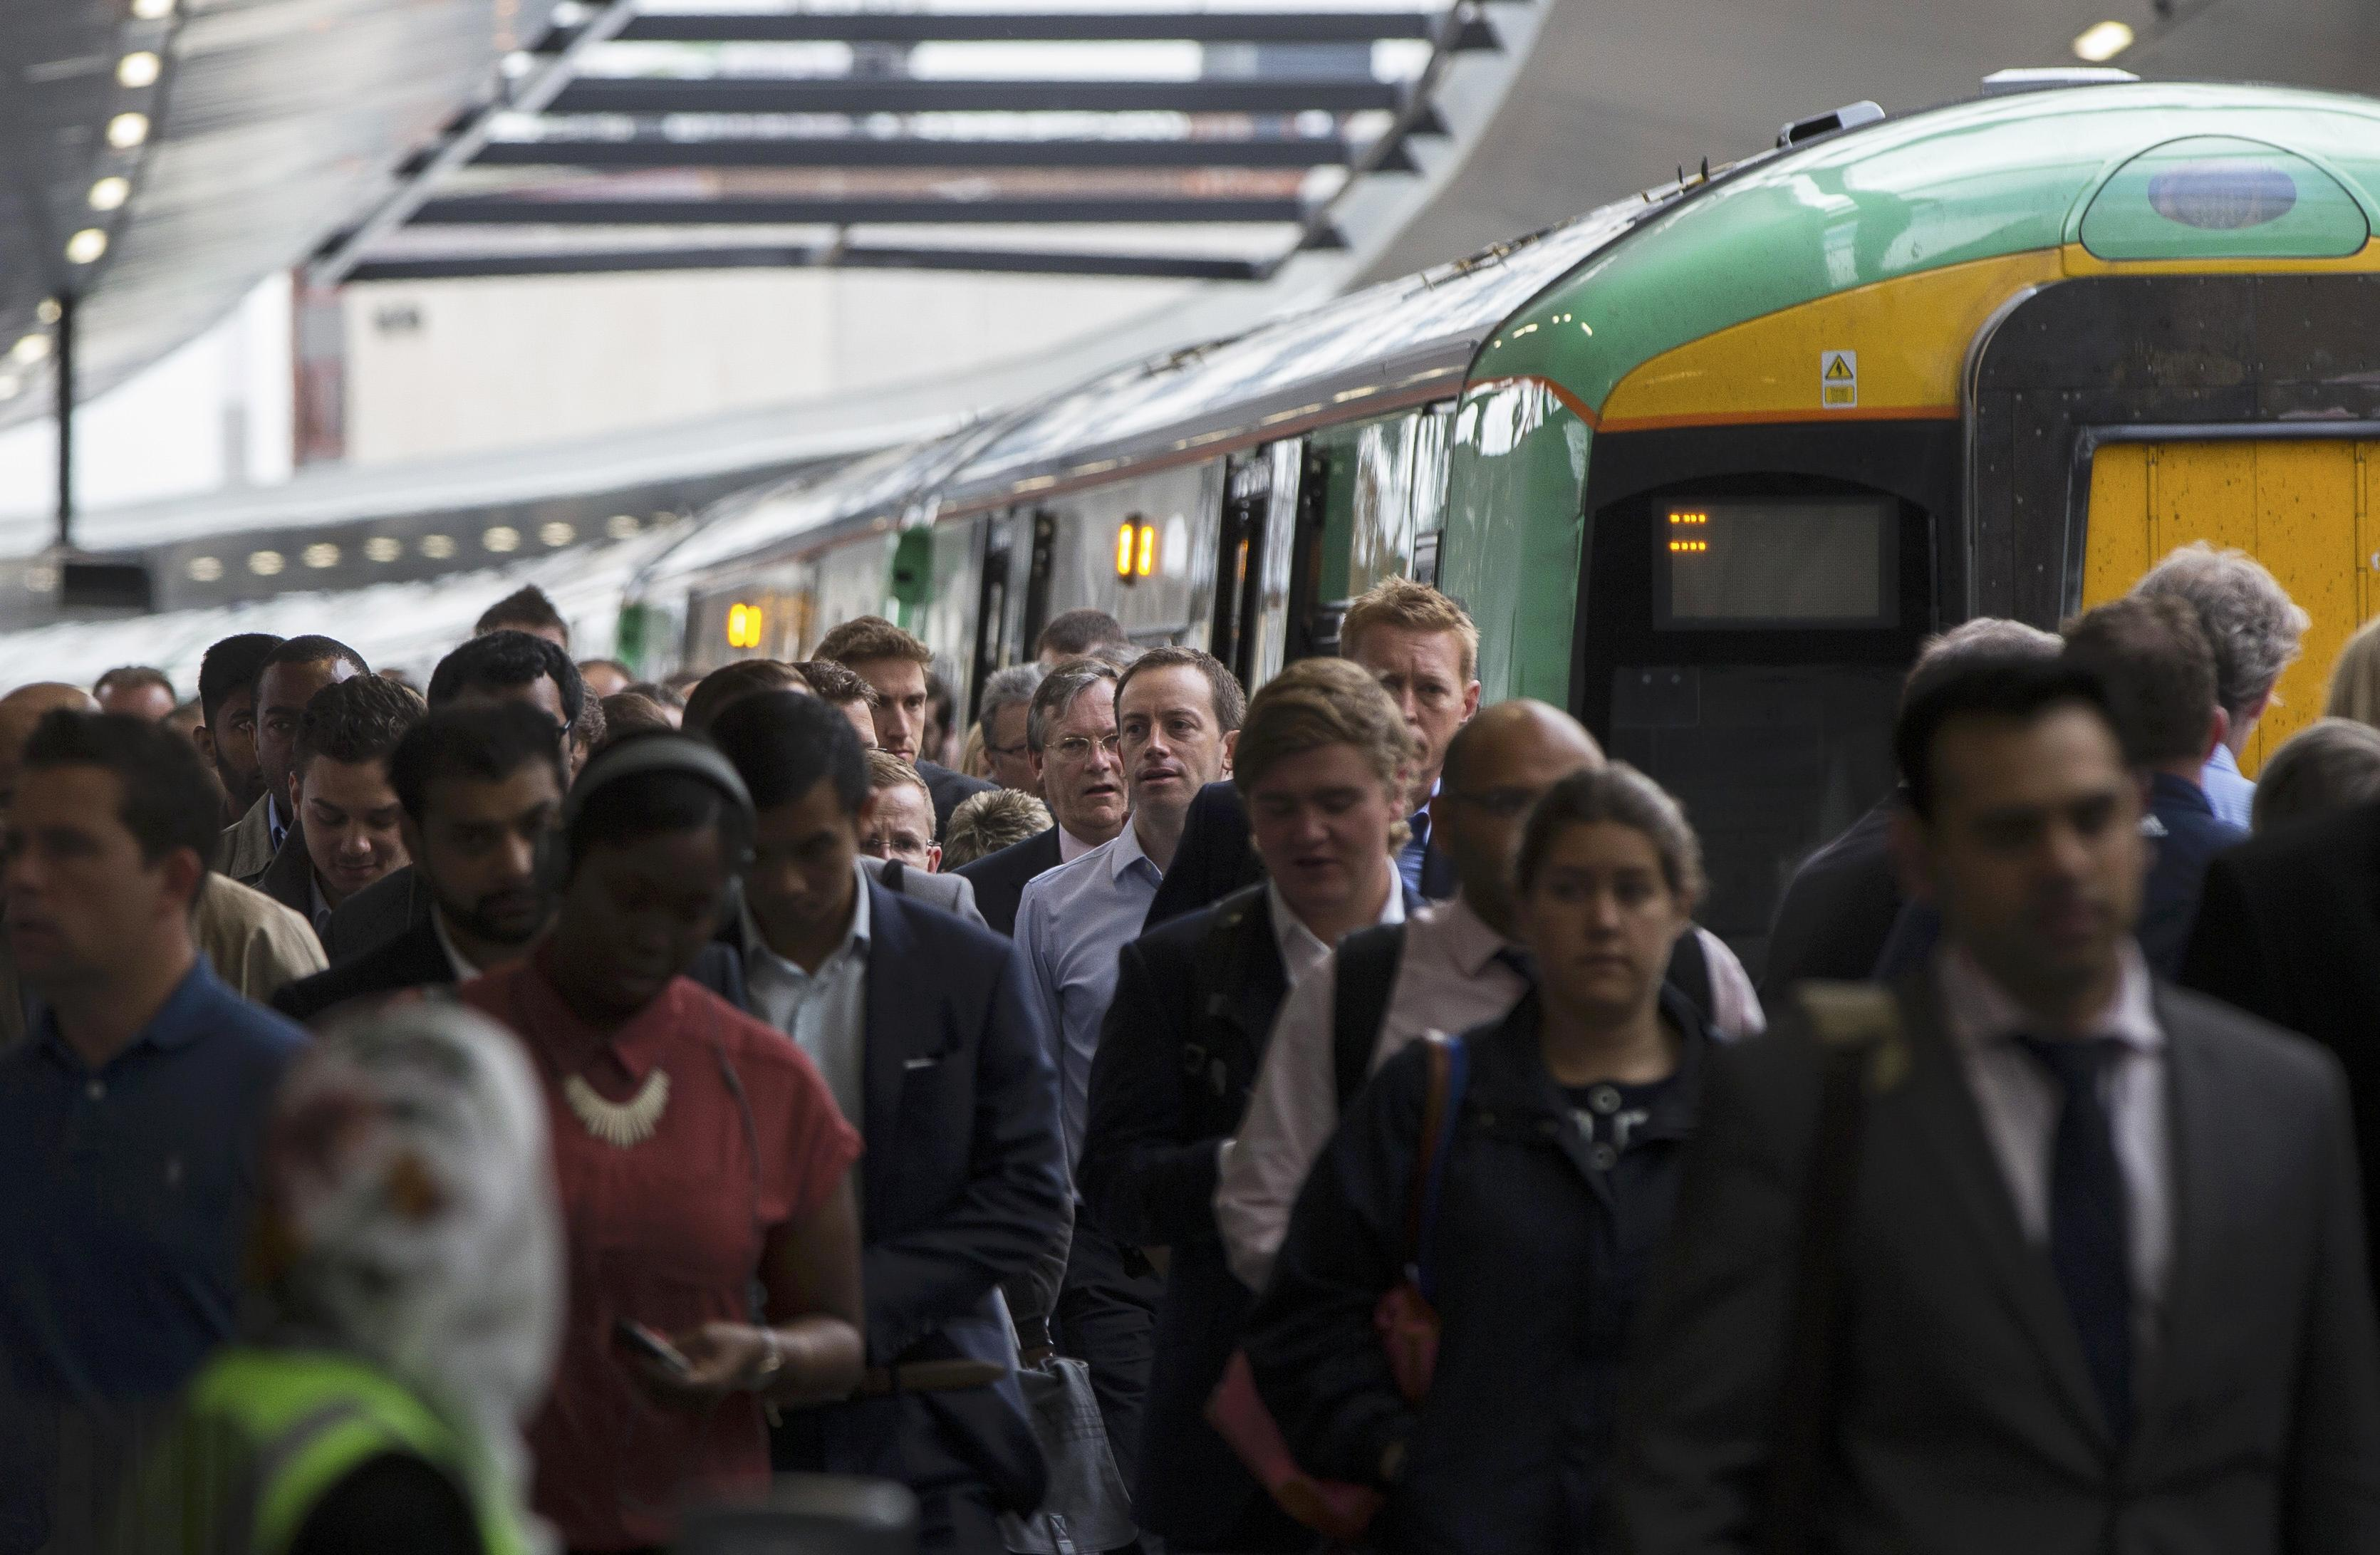 Network Rail faces £2 million fine over late trains and London Bridge chaos